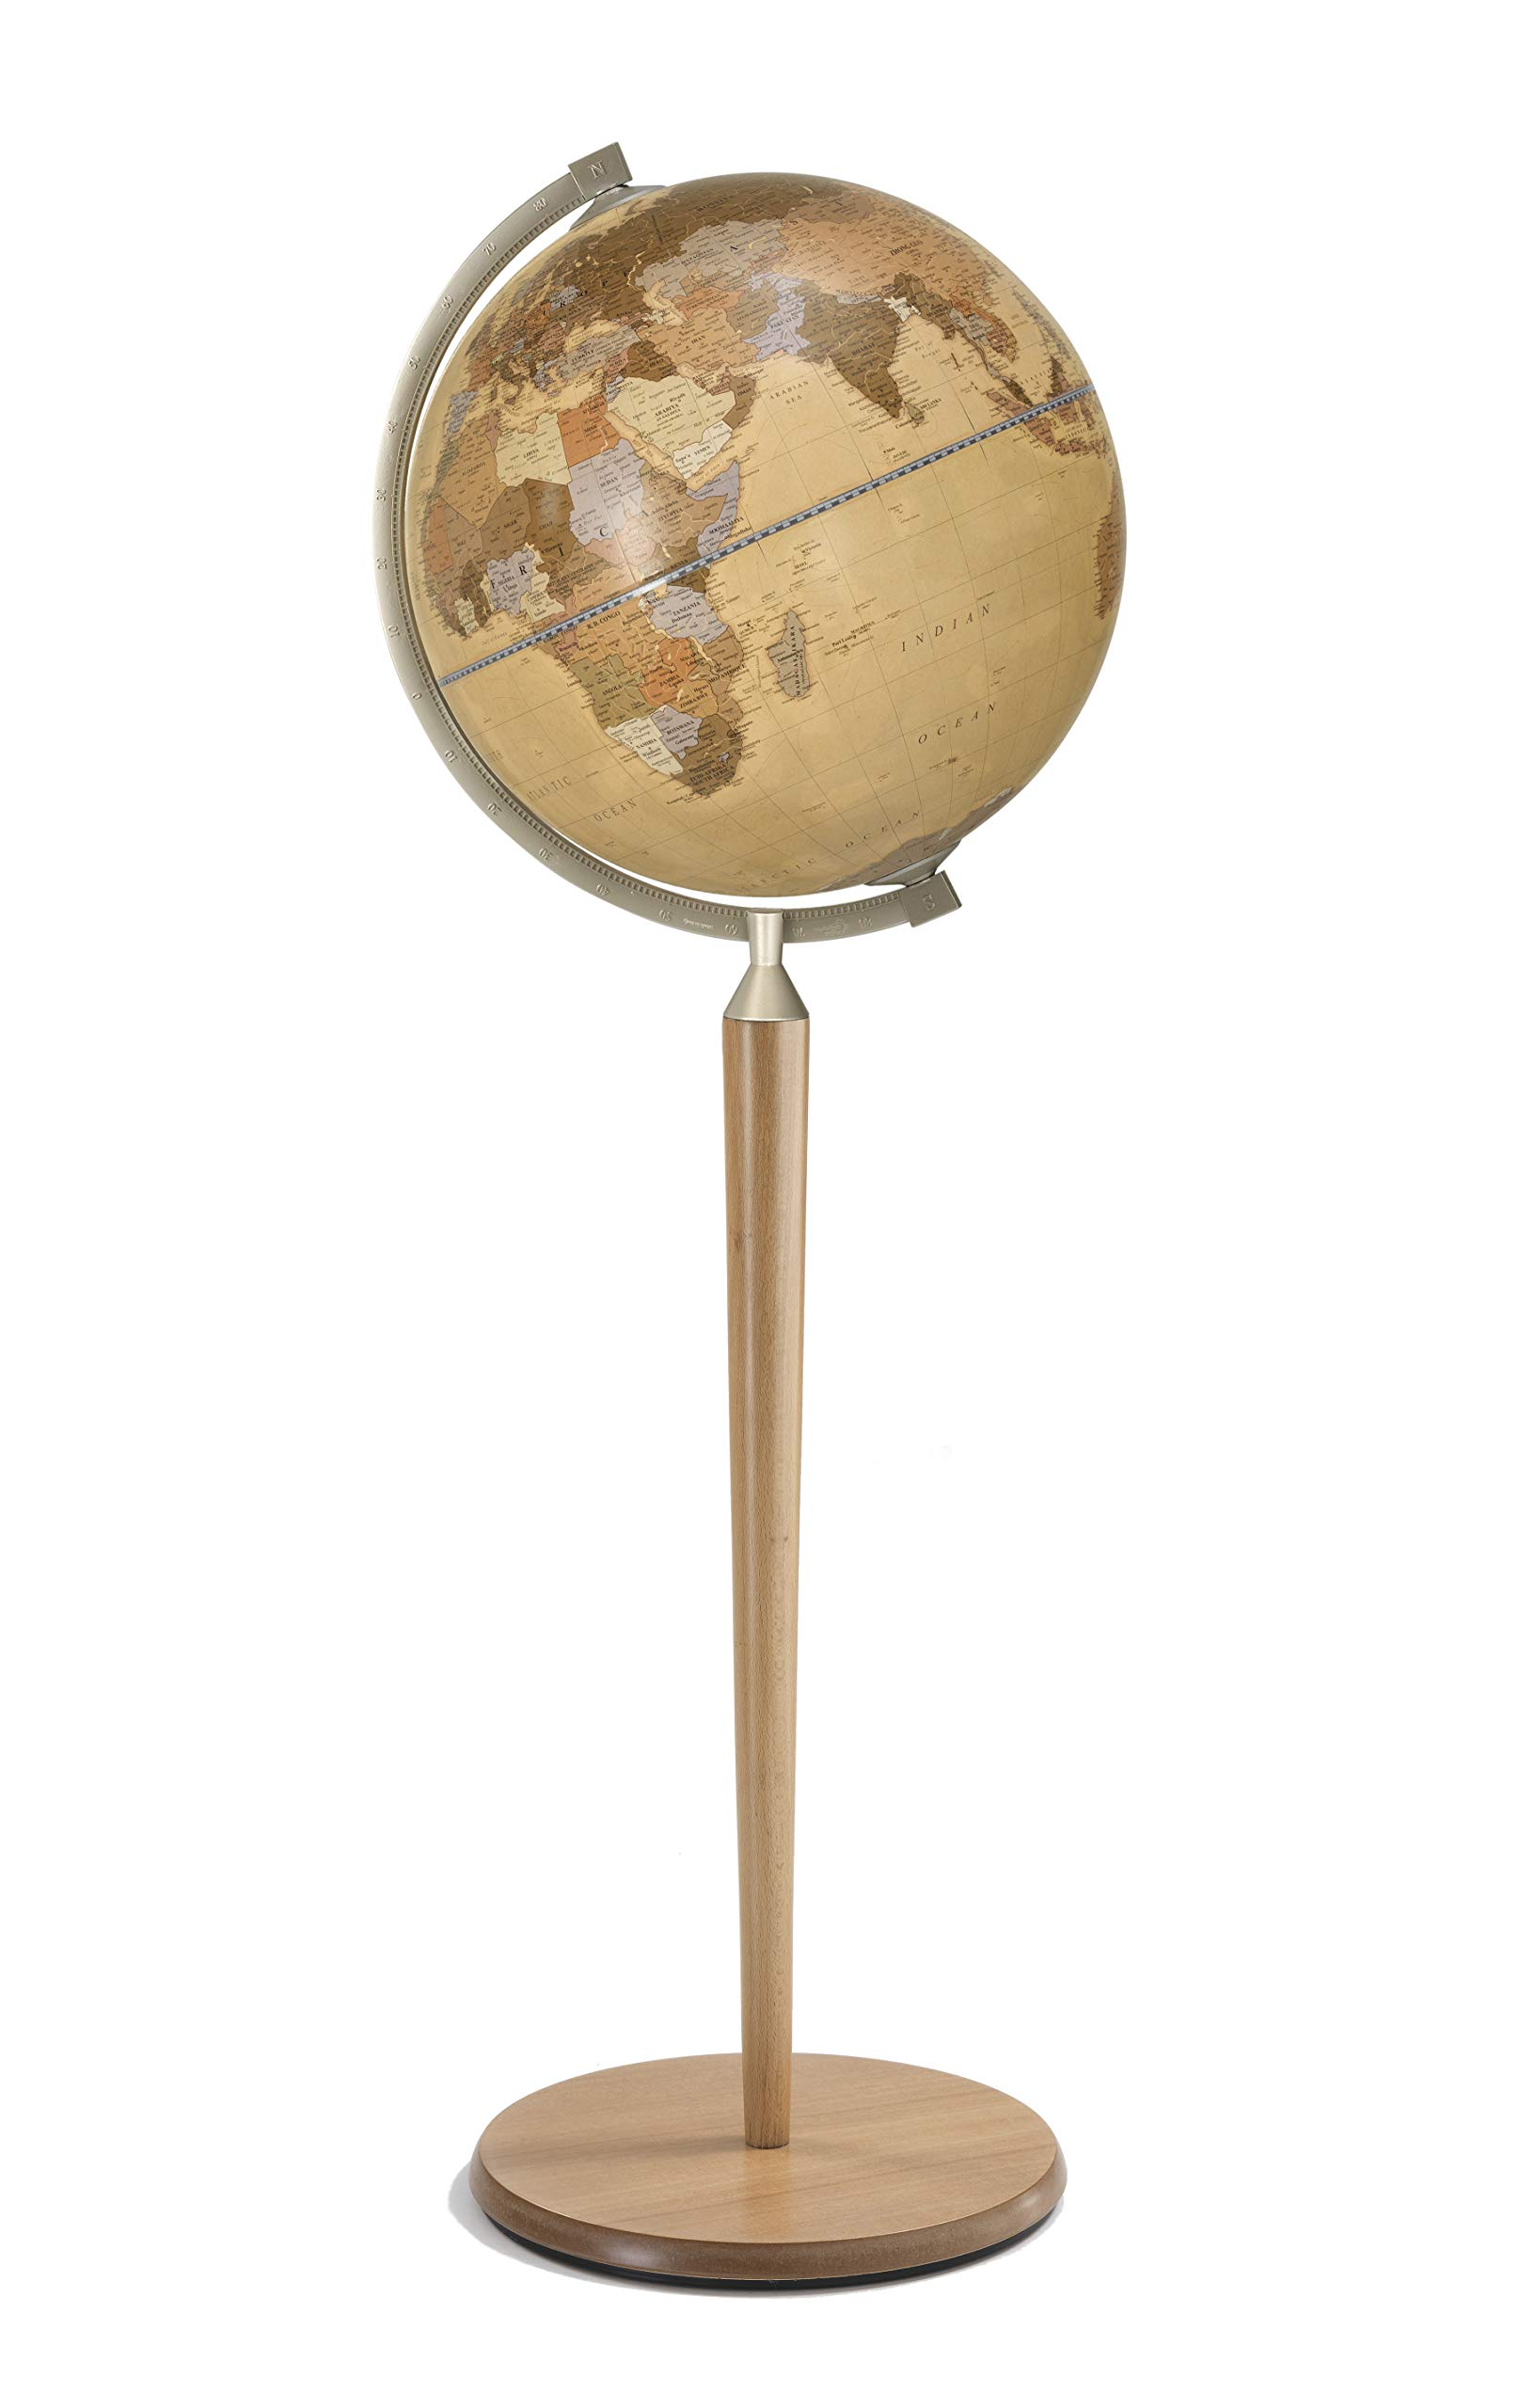 Zoffoli 16'' Vasco da Gama Floor Globe (Natural Stand with Apricot Ocean) by Zoffoli Globes USA (Image #1)